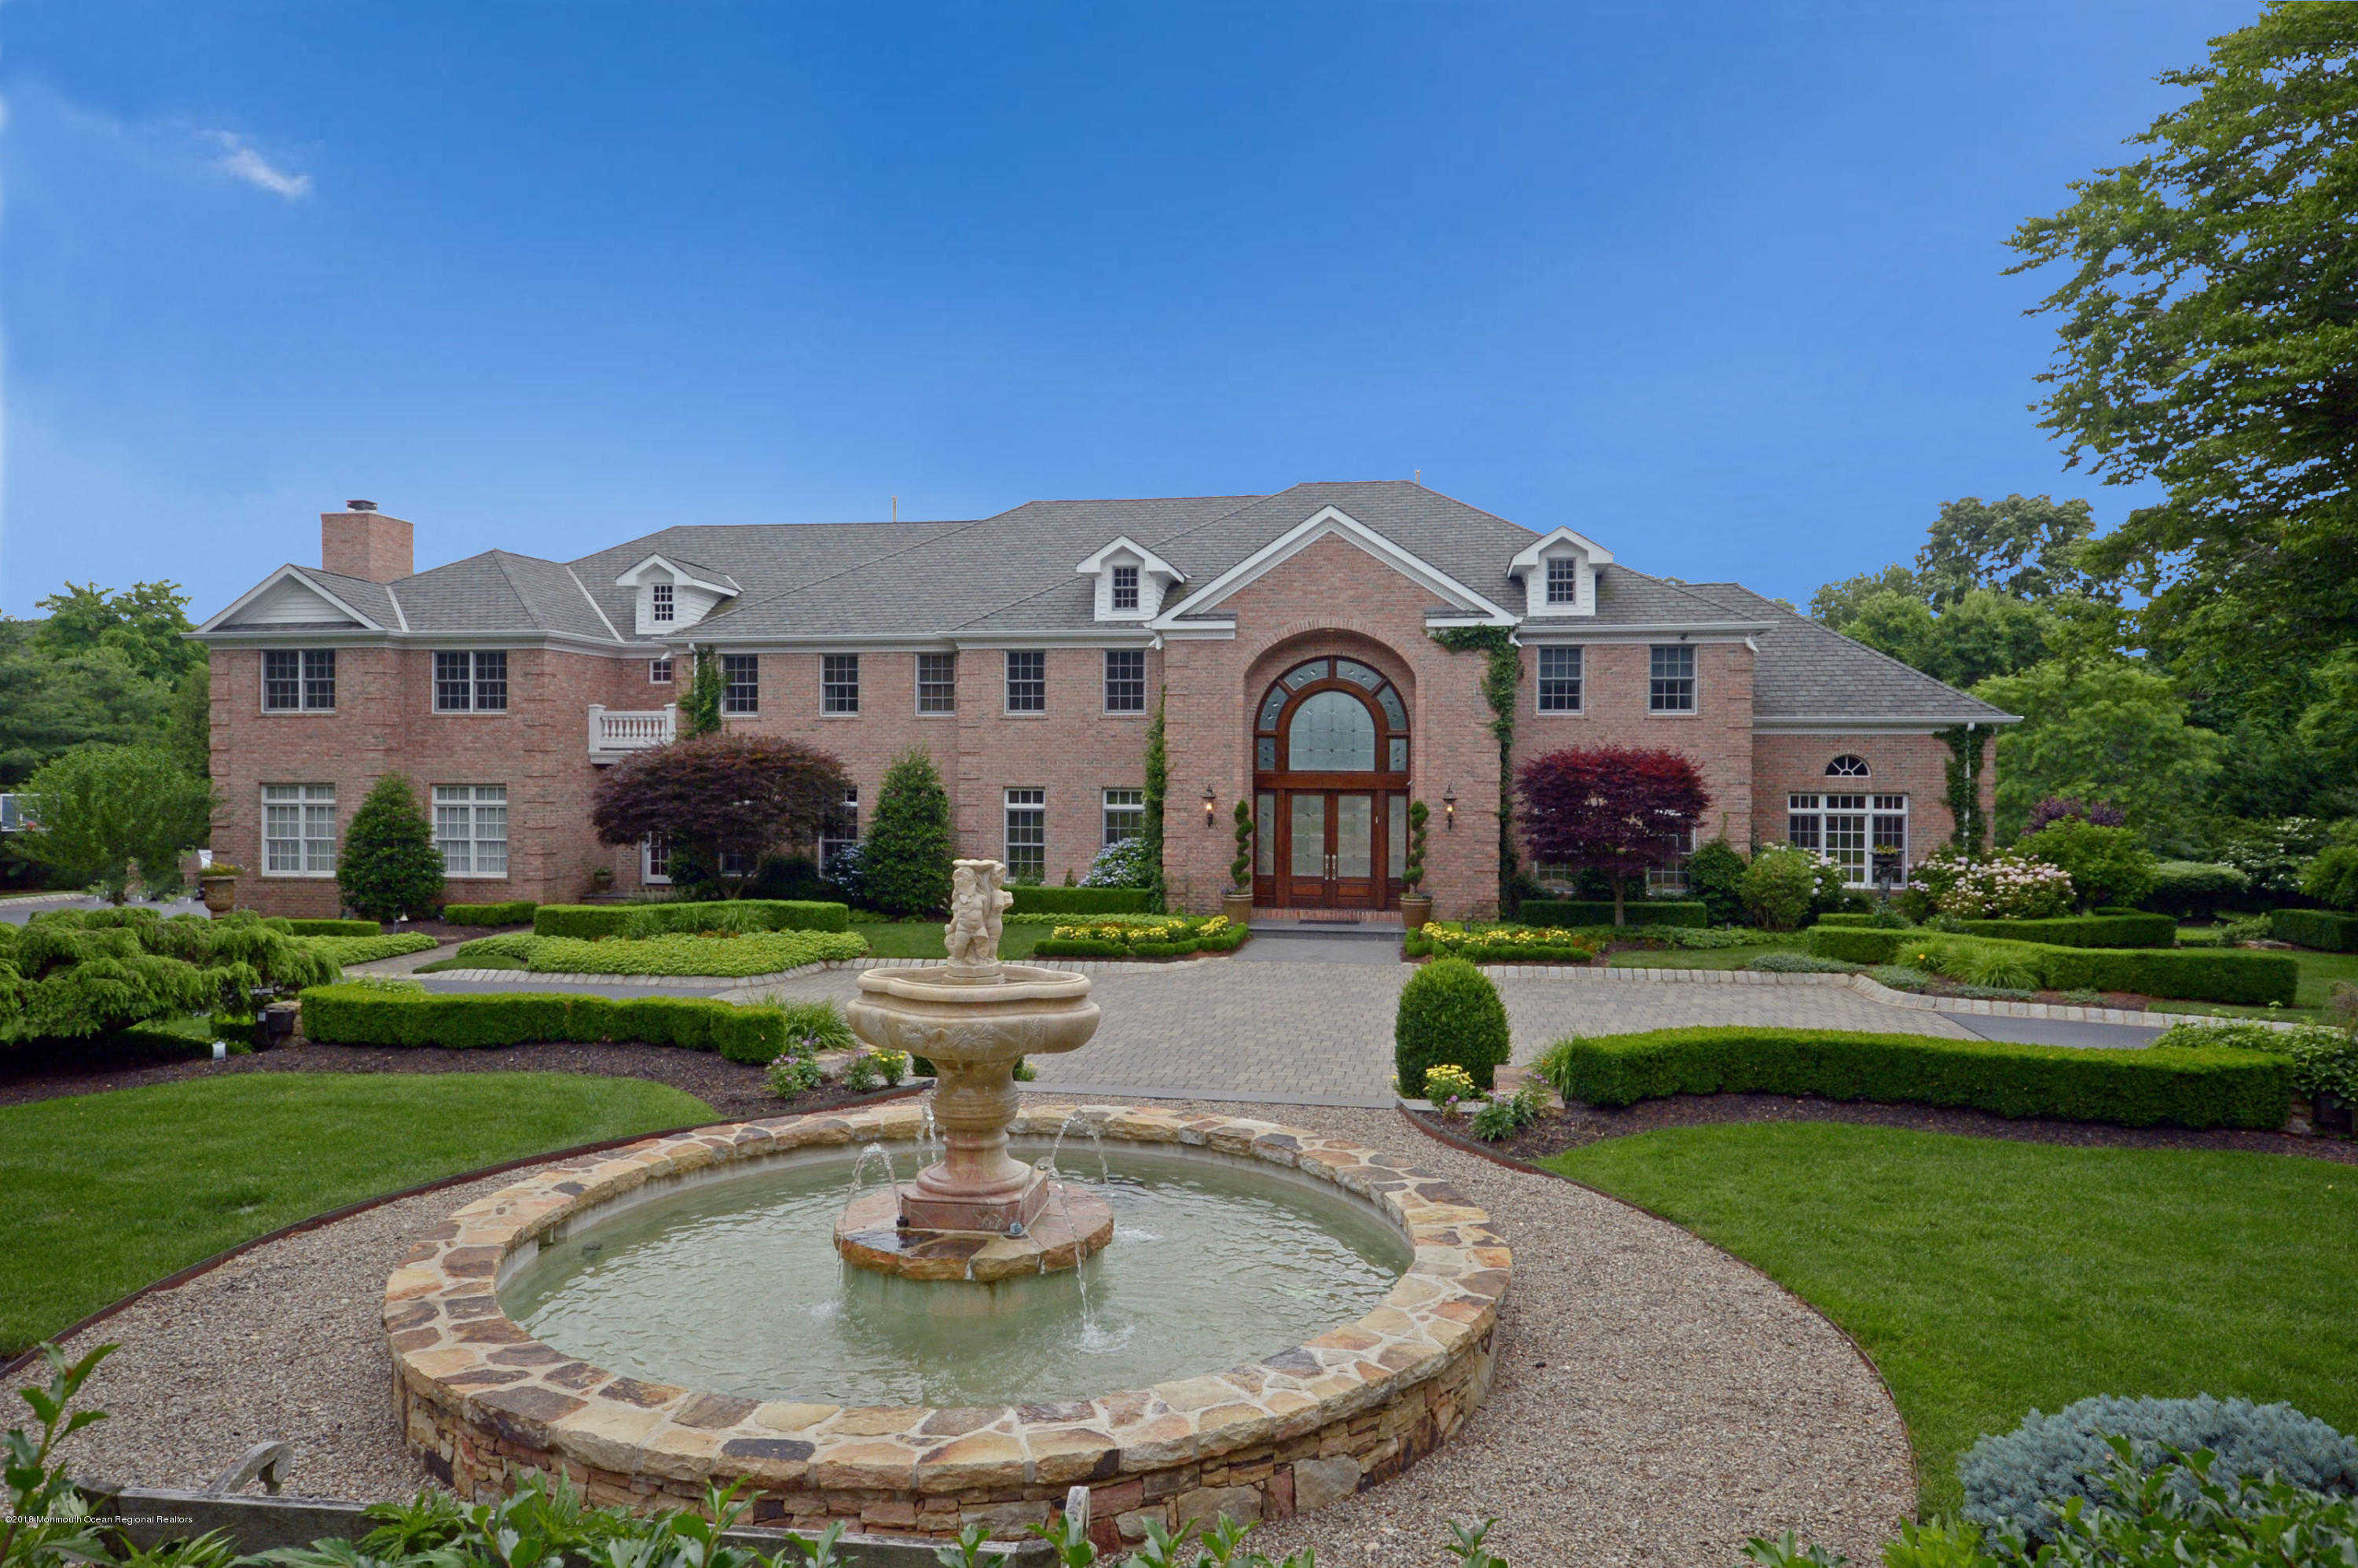 132 Heulitt Road, Colts Neck, NJ 07722 now has a new price of $2,700,000!